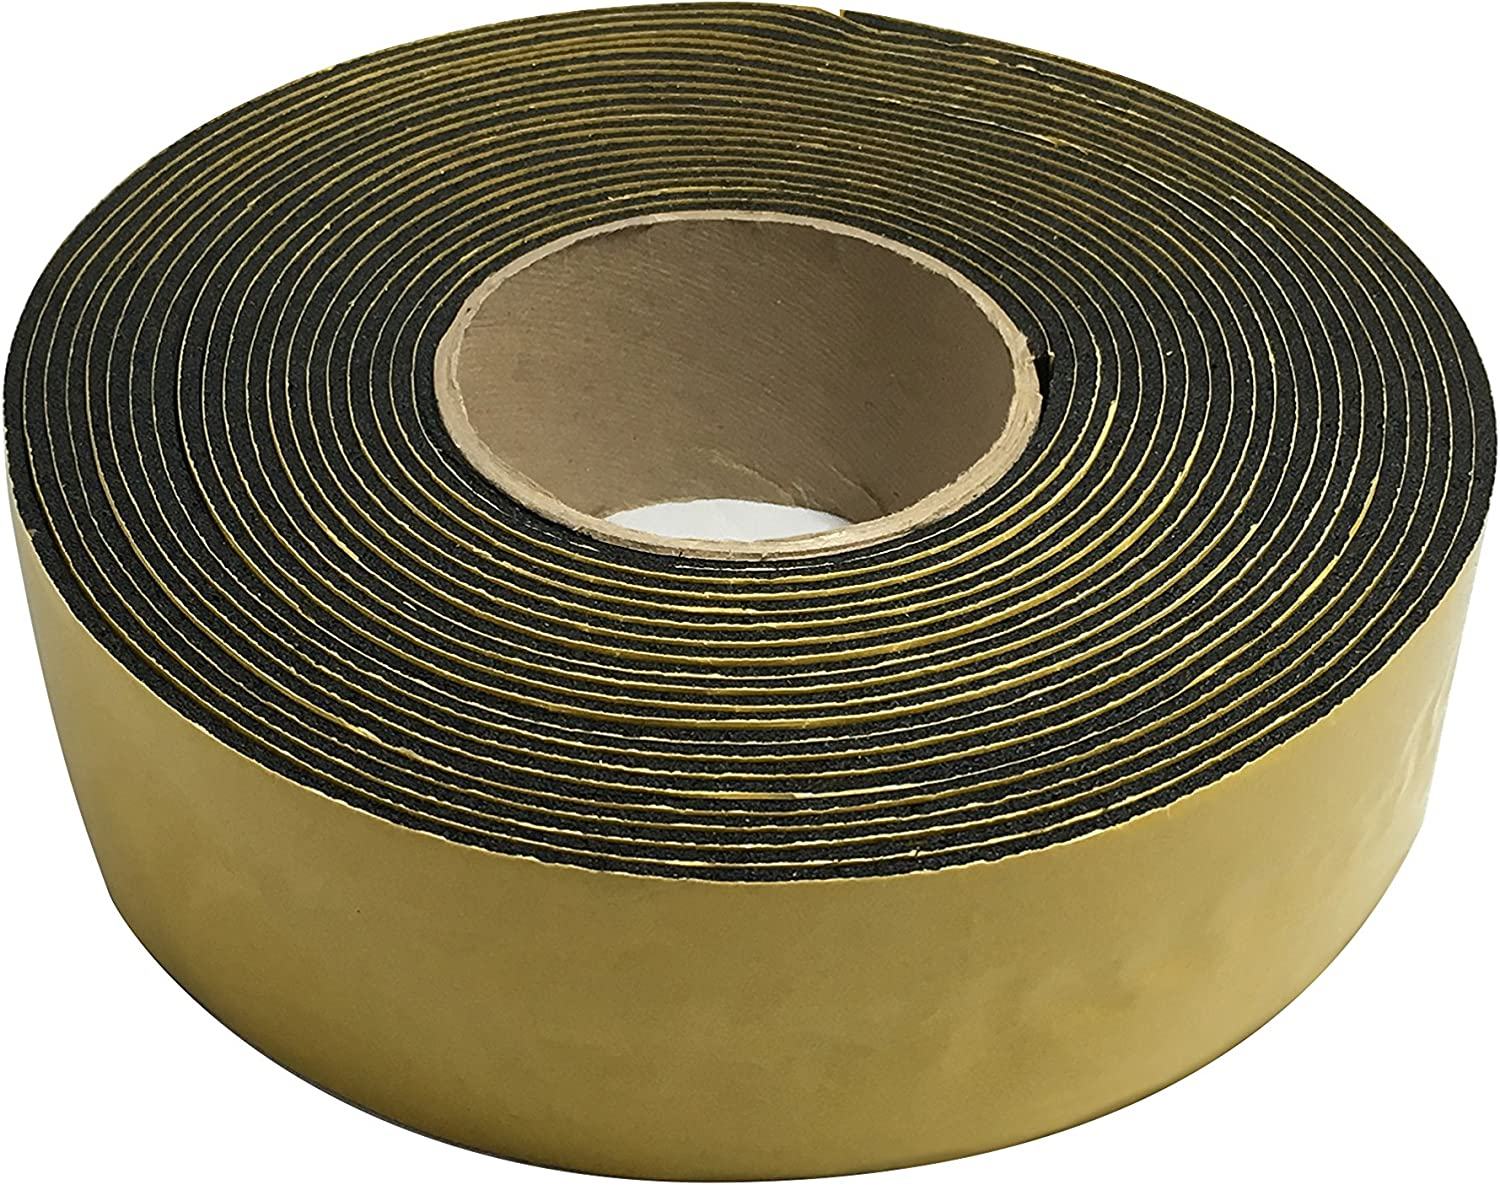 Frost King IT30 8 2 x 1 30' Black Tape Rubber Insulation New product 8